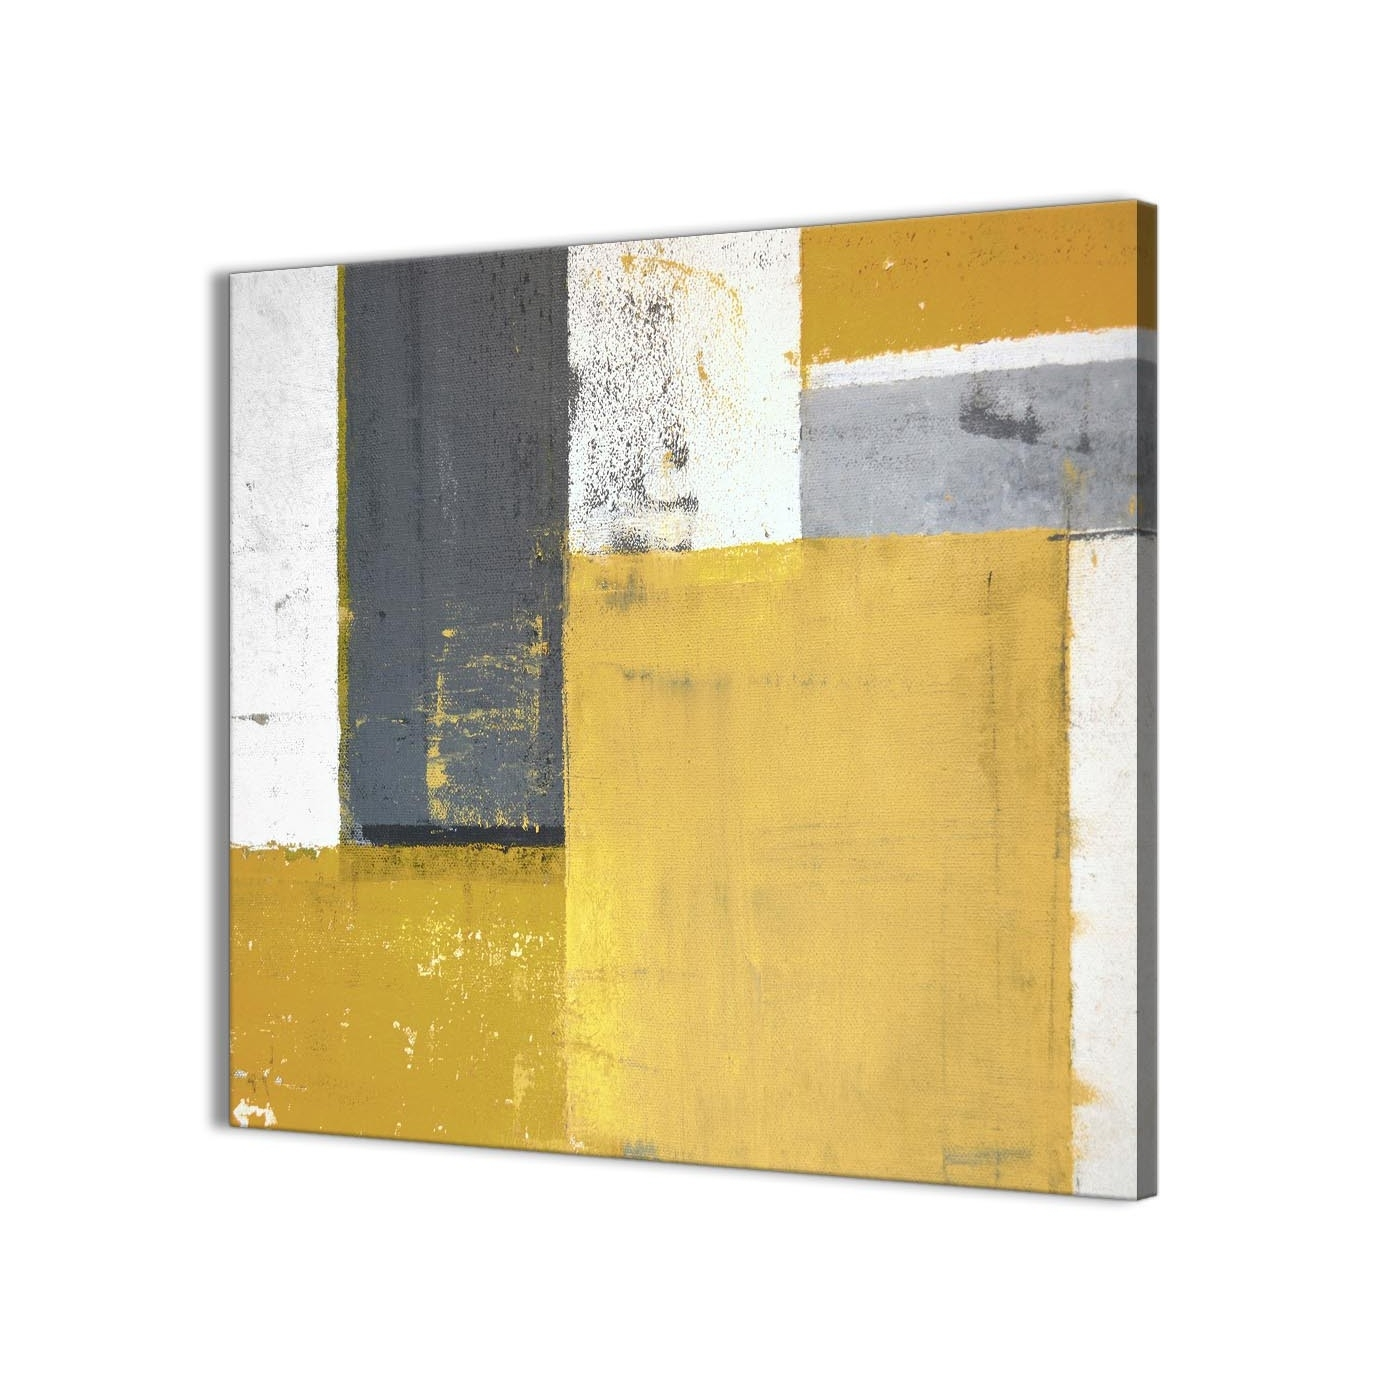 Mustard Yellow Grey Abstract Painting Canvas Wall Art Print Inside Widely Used Grey Abstract Canvas Wall Art (View 9 of 15)